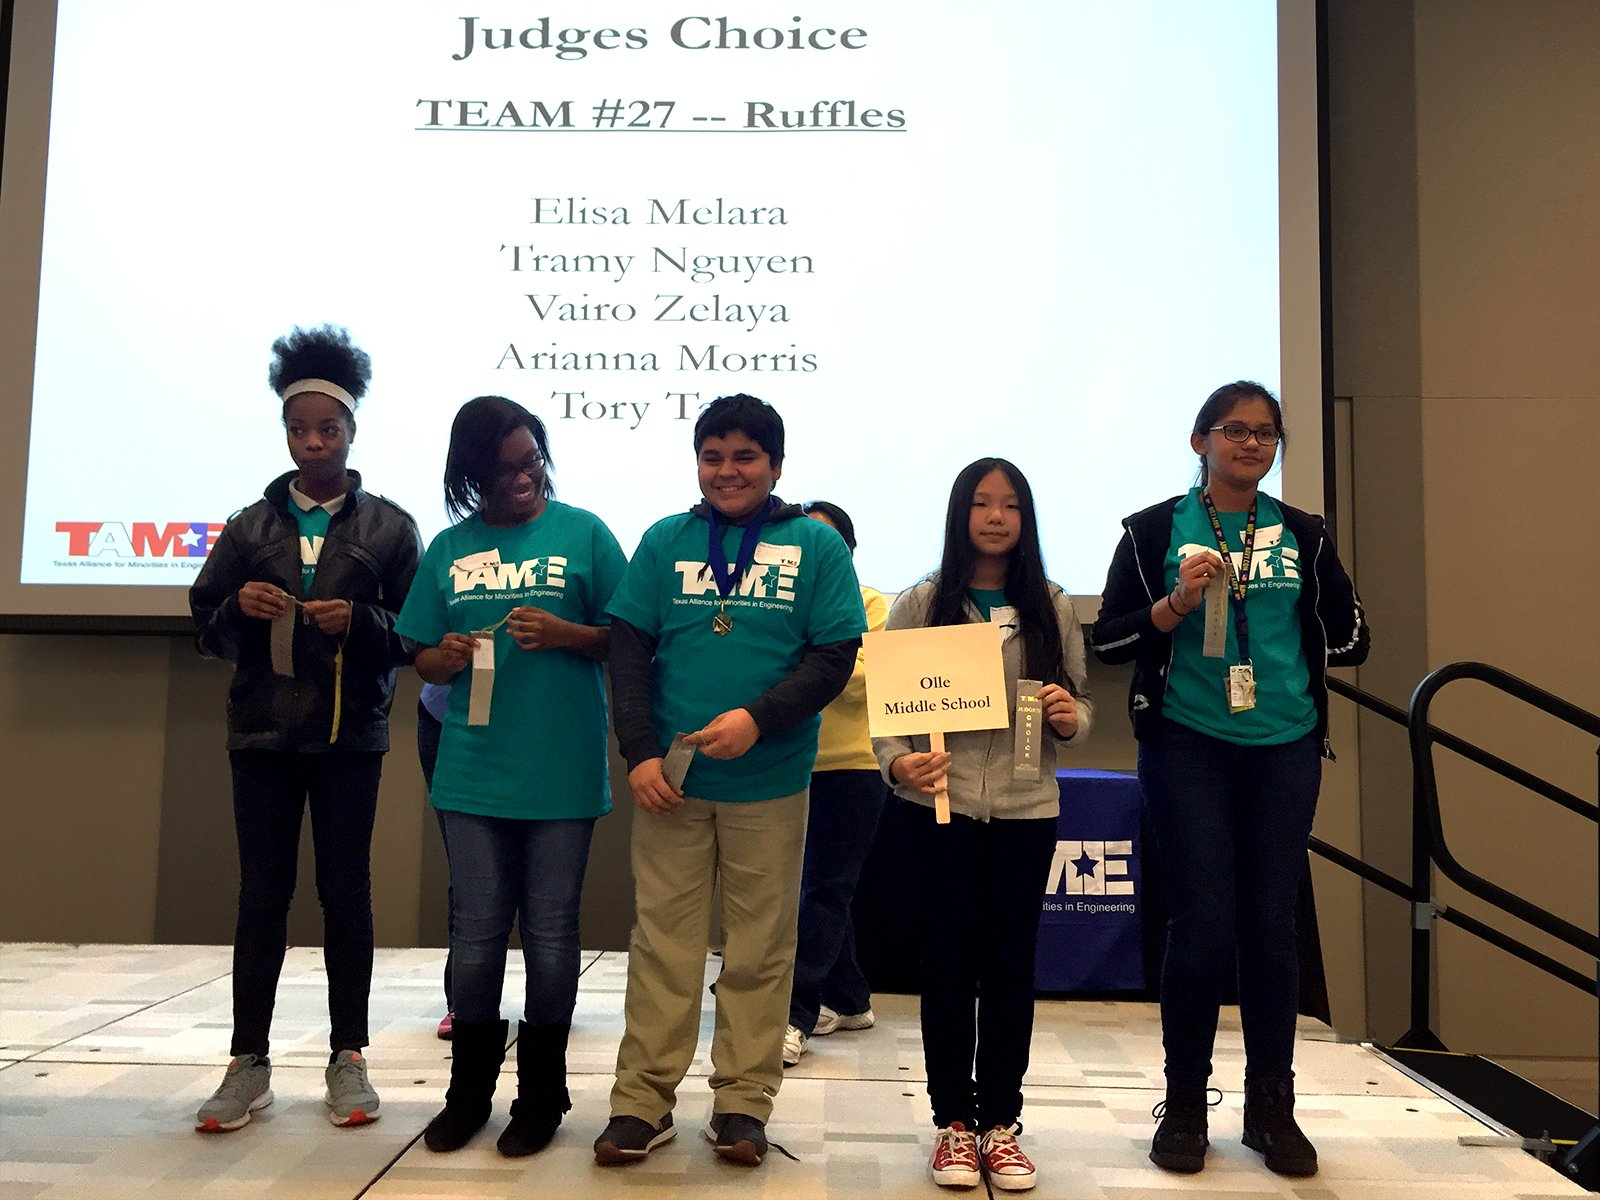 The 2016 TAME Dallas STEM Competition was hosted at Tarrant County College on Saturday February 6, 2016. (Lake Jackson, TX) – The 2016 TAME Gulf Coast STEM Competition was sponsored by BASF and hosted at Brazosport College on Saturday February 6, 2016